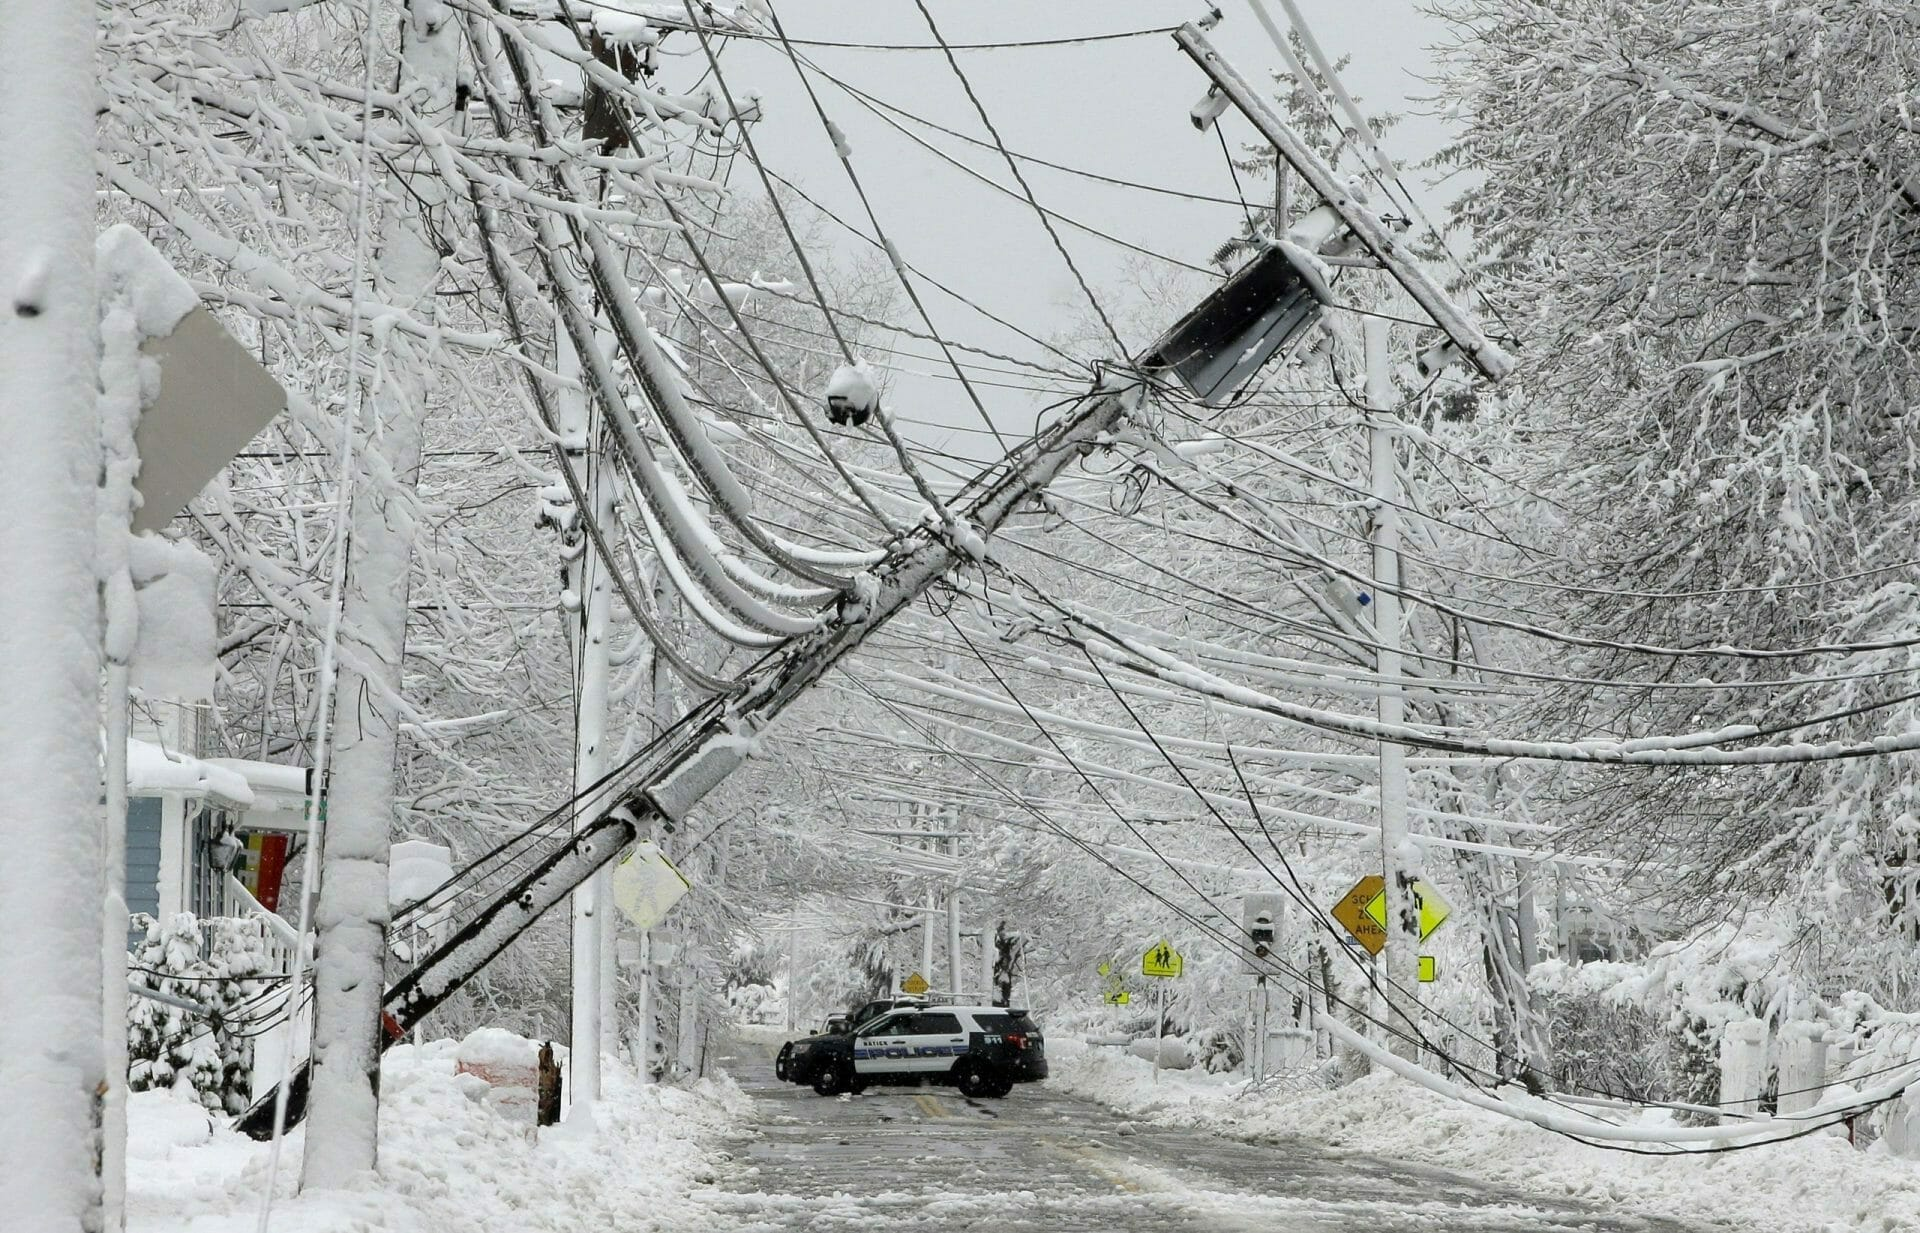 winter storm power lines power outage